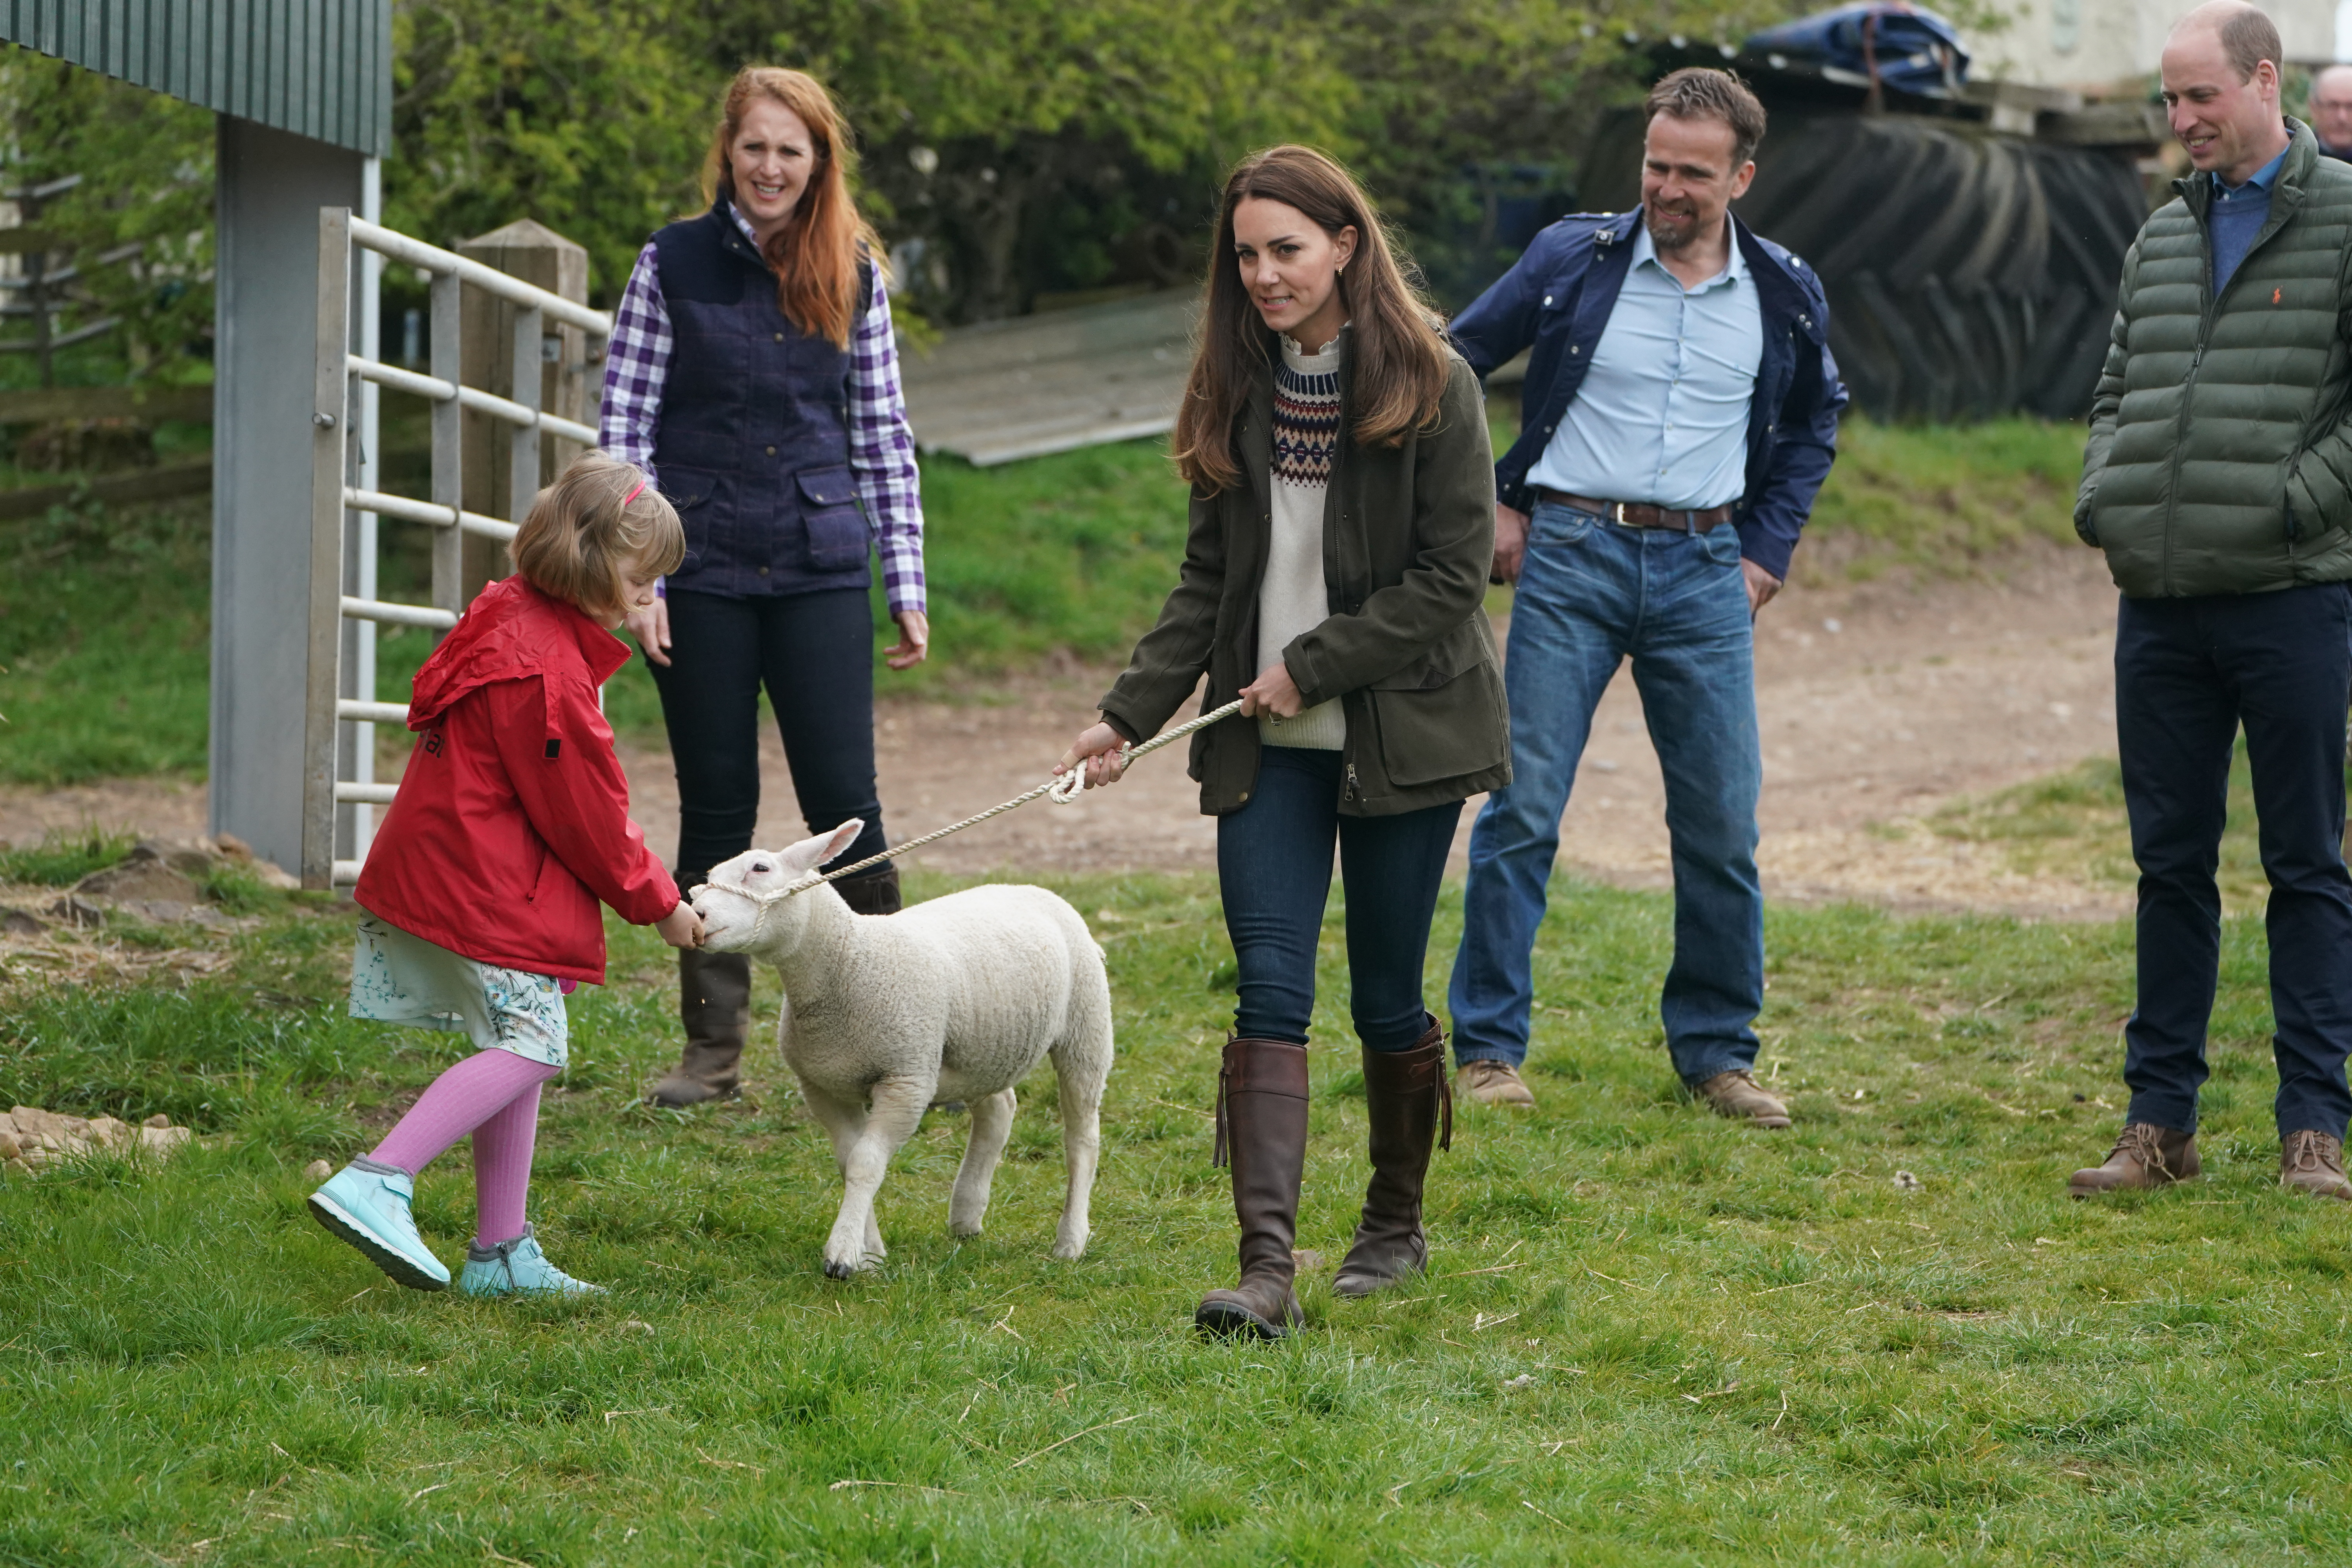 <p>The Duchess of Cambridge and farmer's daughter Clover Chapman, 9, walk a lamb together, watched by her parents and the Duke of Cambridge, during a royal visit to Manor Farm in Little Stainton, Durham. Picture date: Tuesday April 27, 2021.</p>